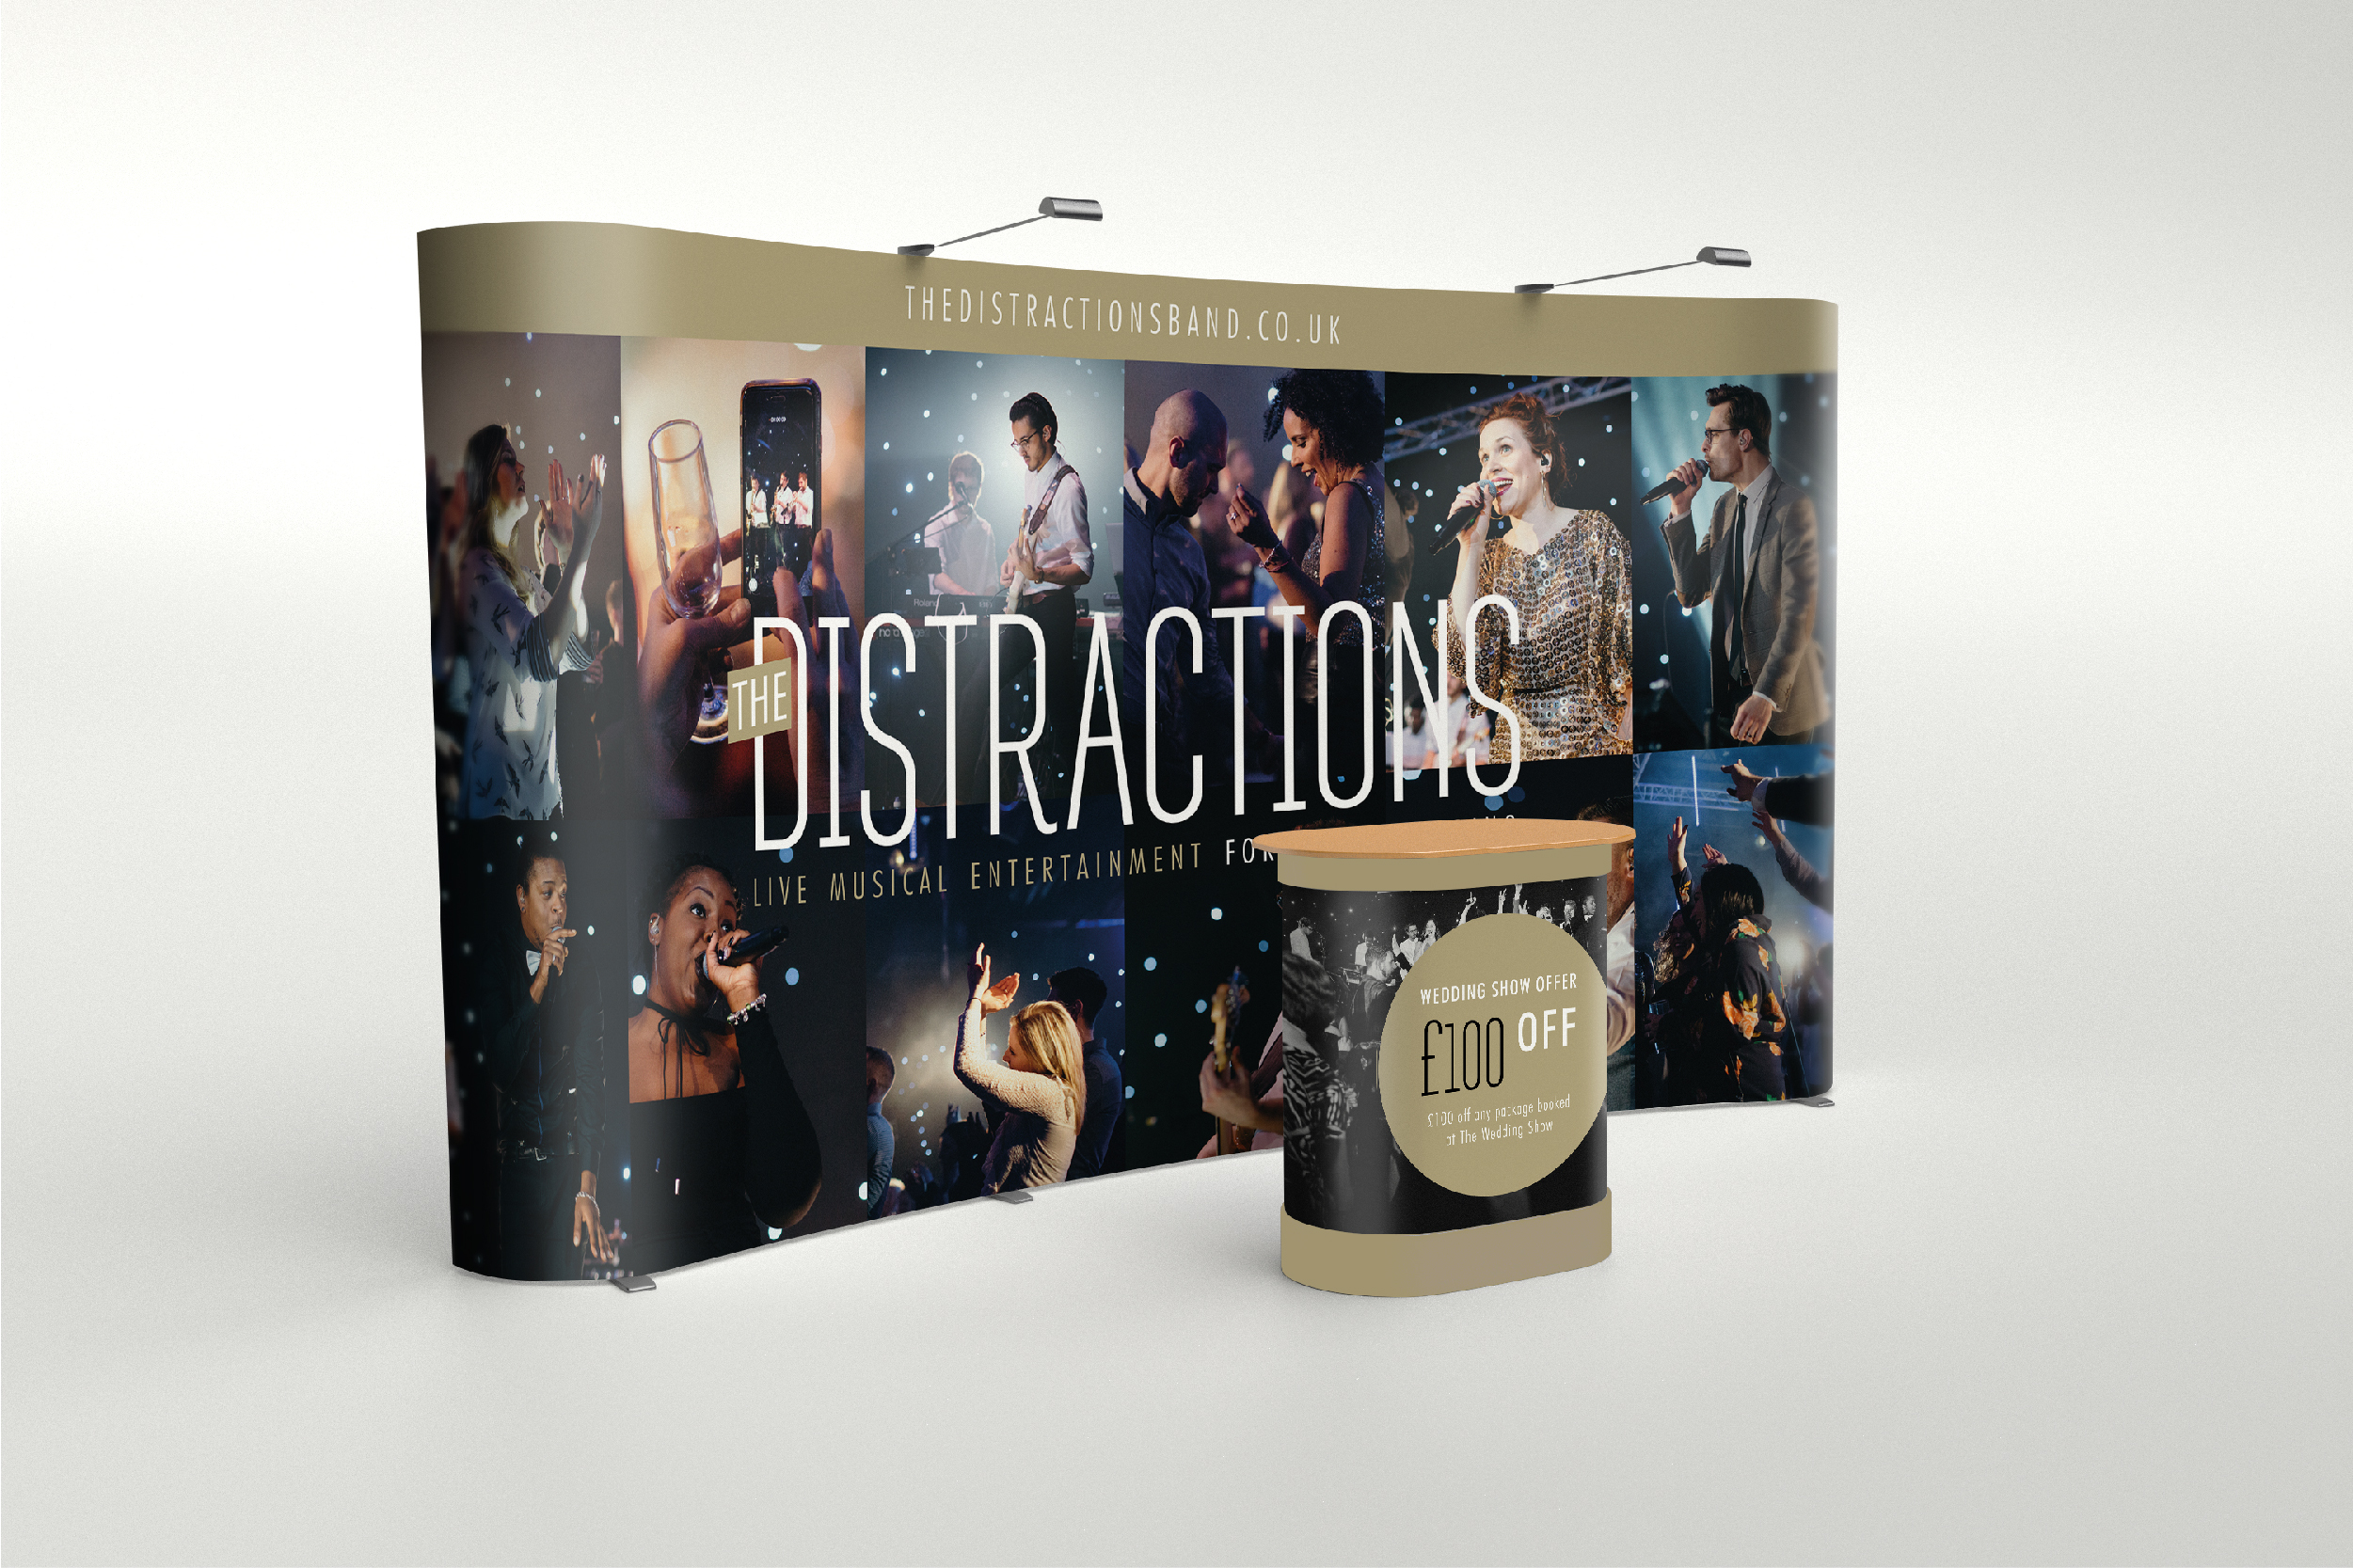 The Distractions Band exhibition stand design